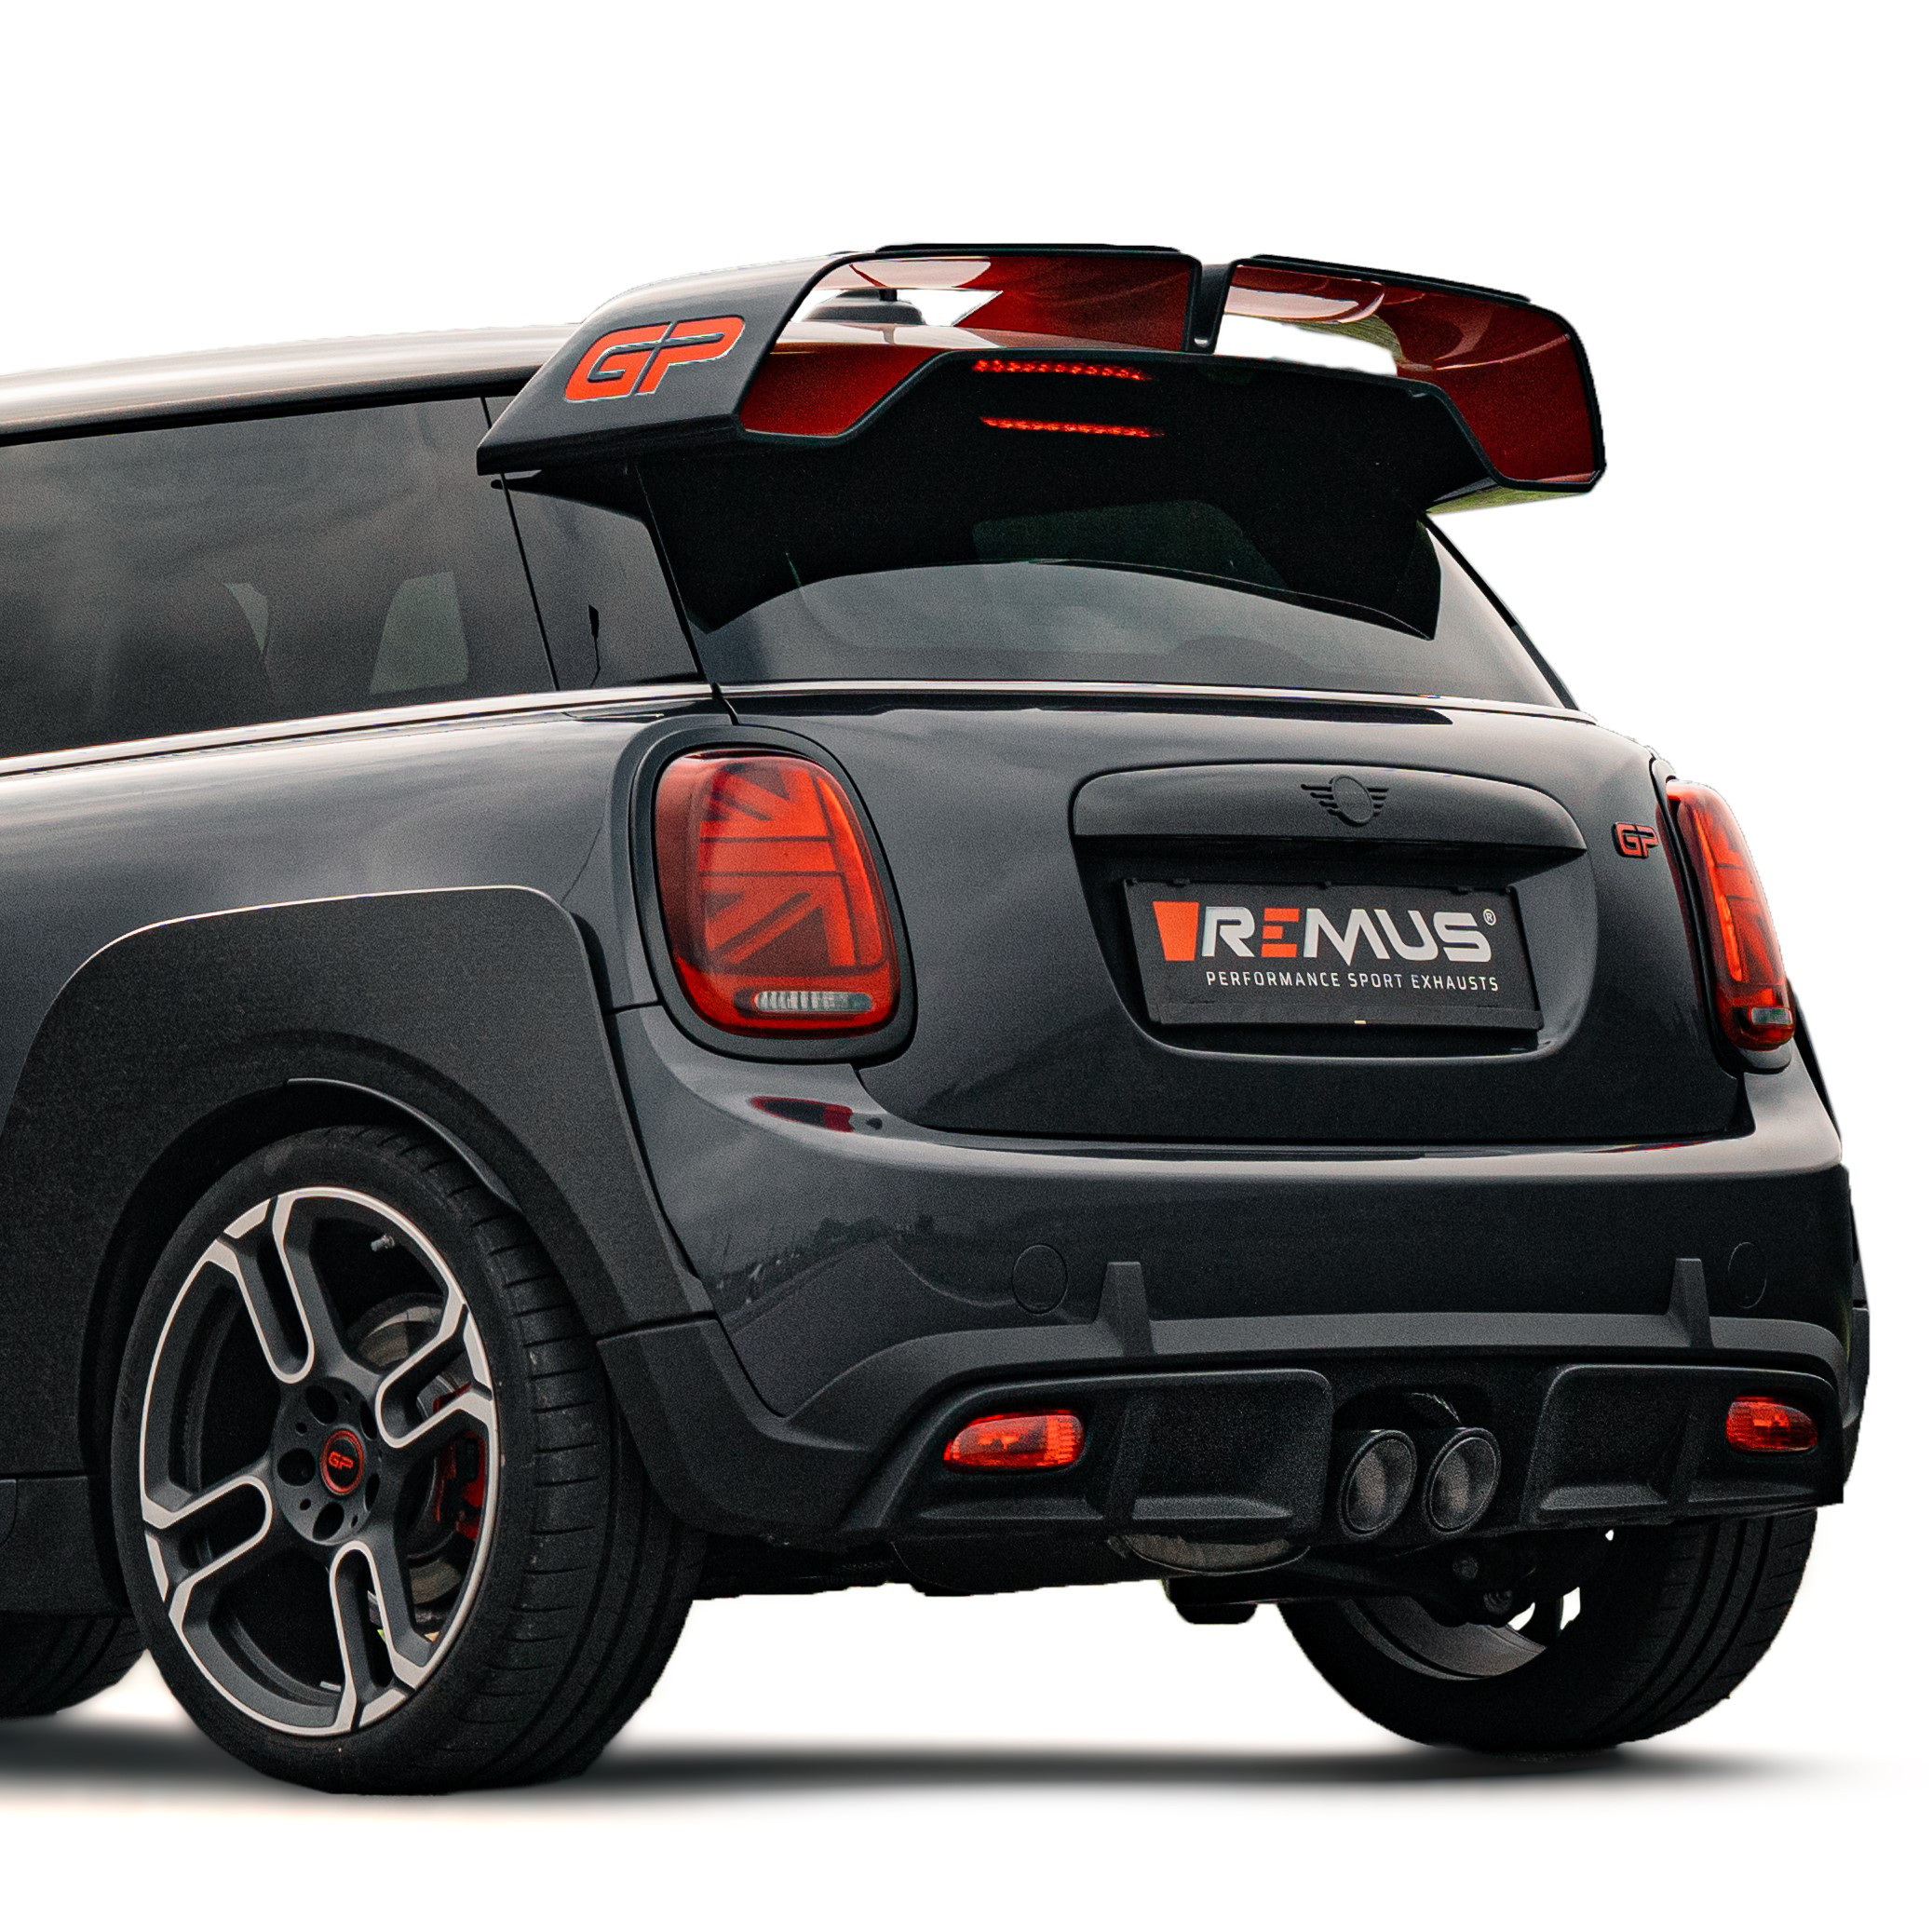 MINI JCW GP F56 REMUS sport exhaust system